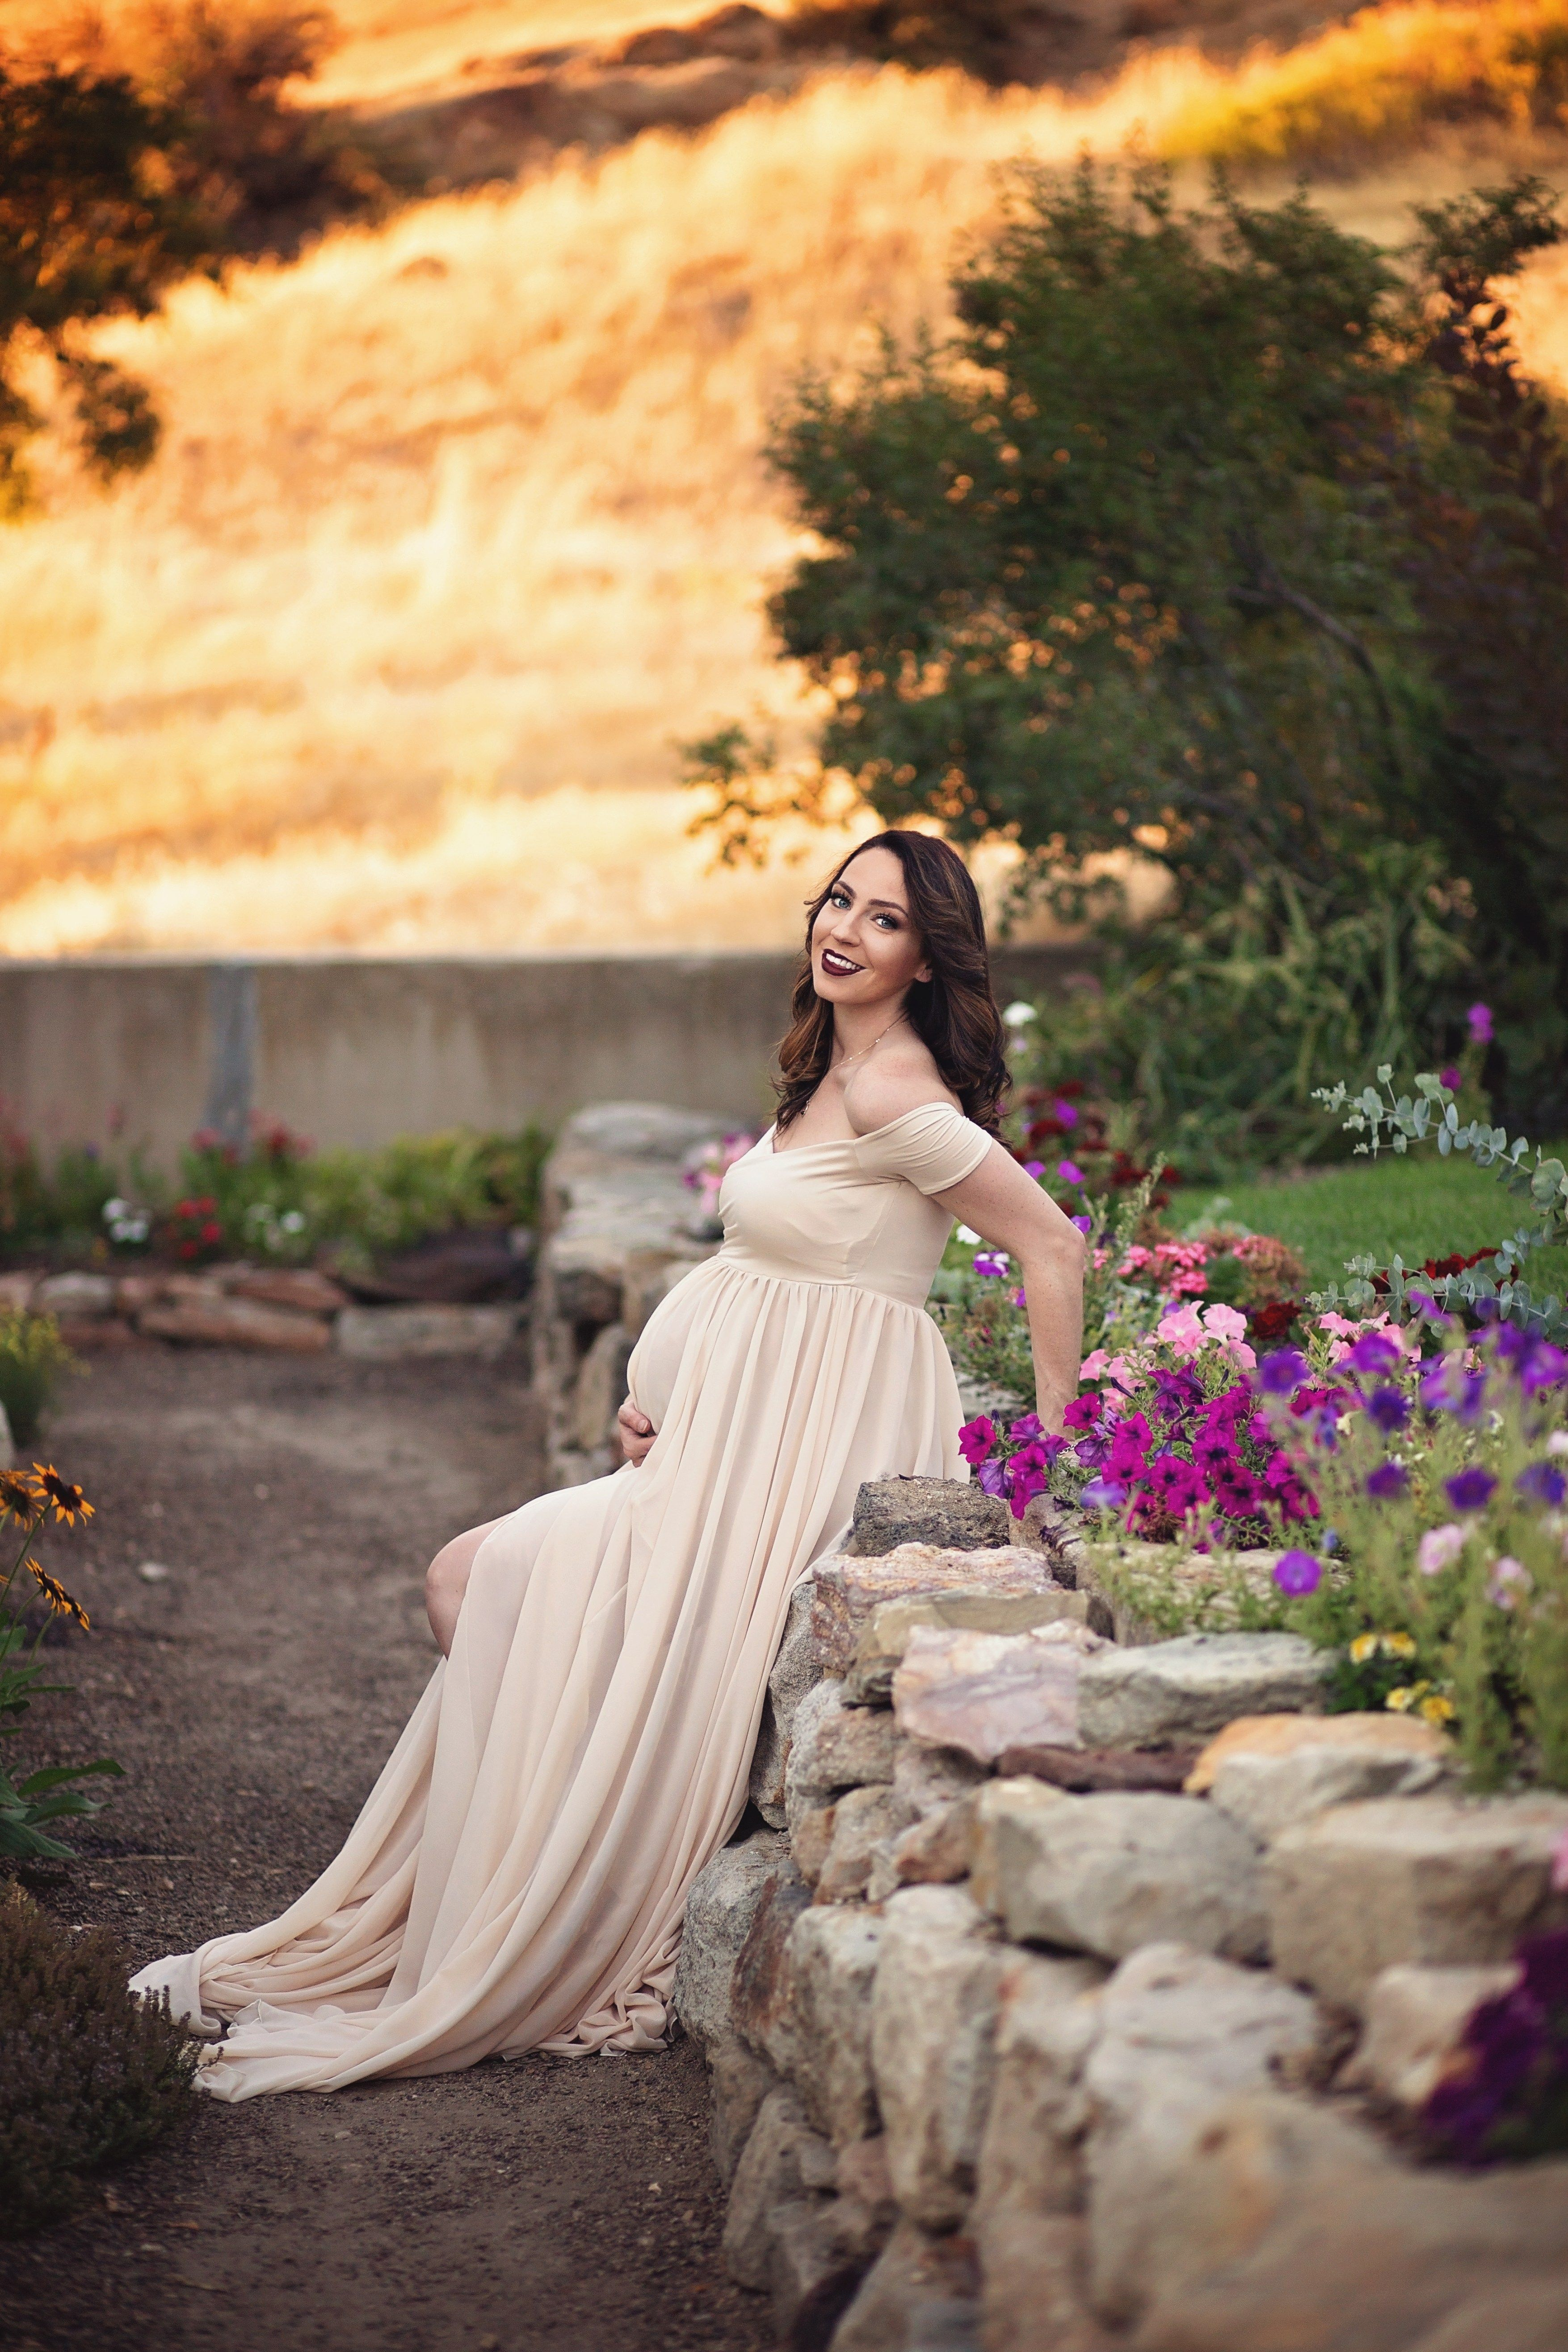 3a4471c3ccfd8 maternity photoshoot spring fall autumn flowers sew trendy pregnancy gown  Talk about feeling like a beautiful